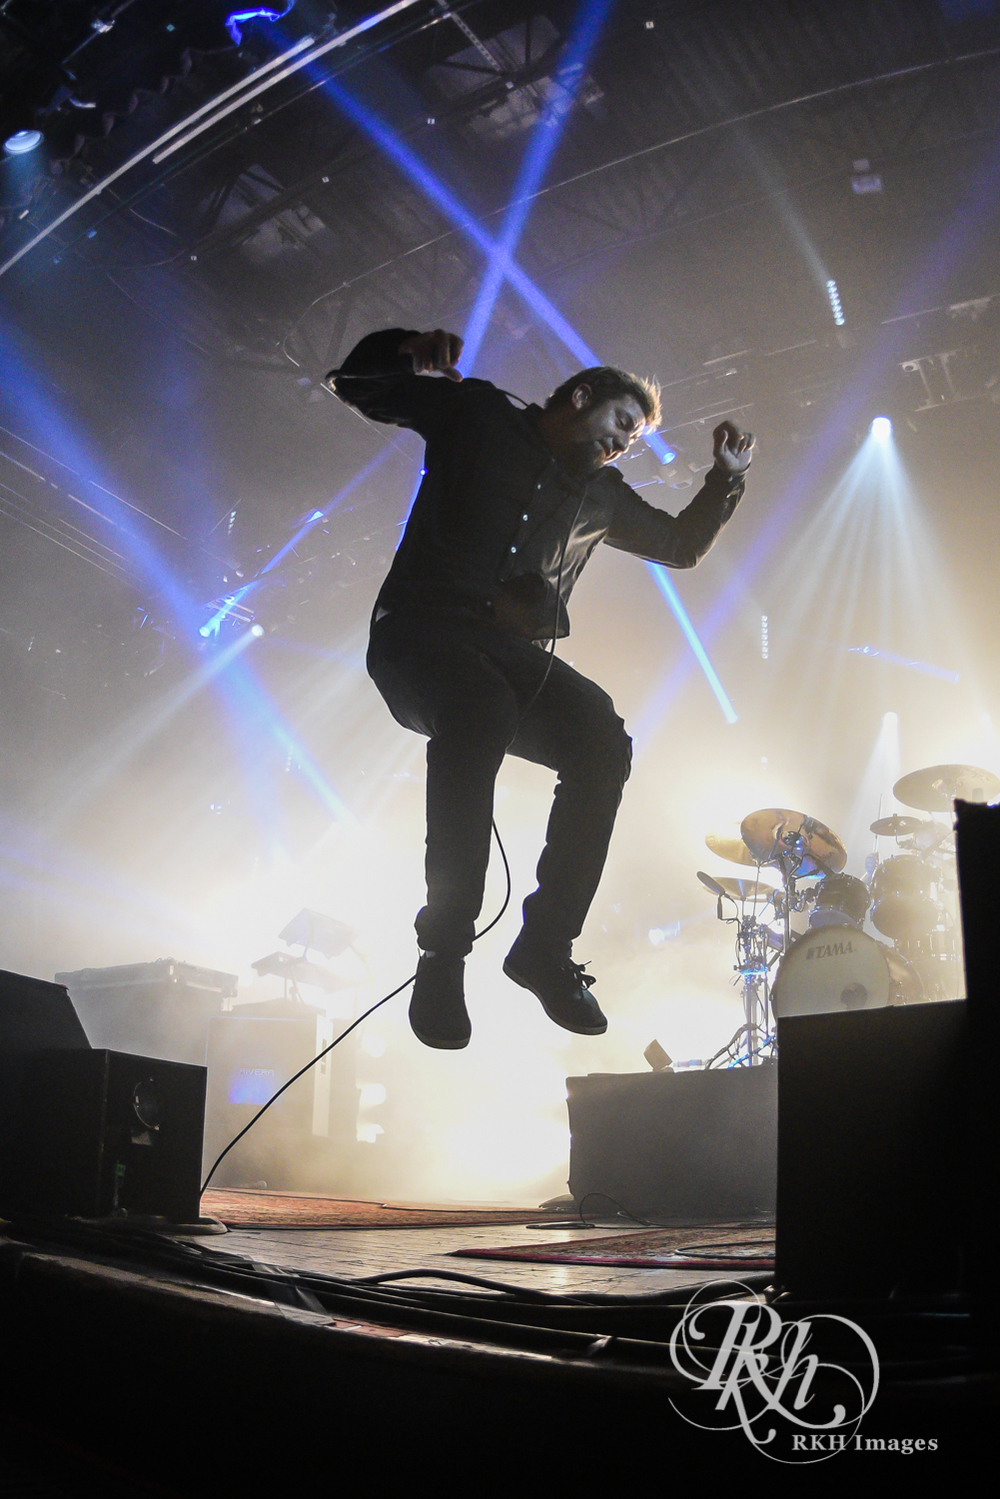 deftones rkh images (23 of 33).jpg